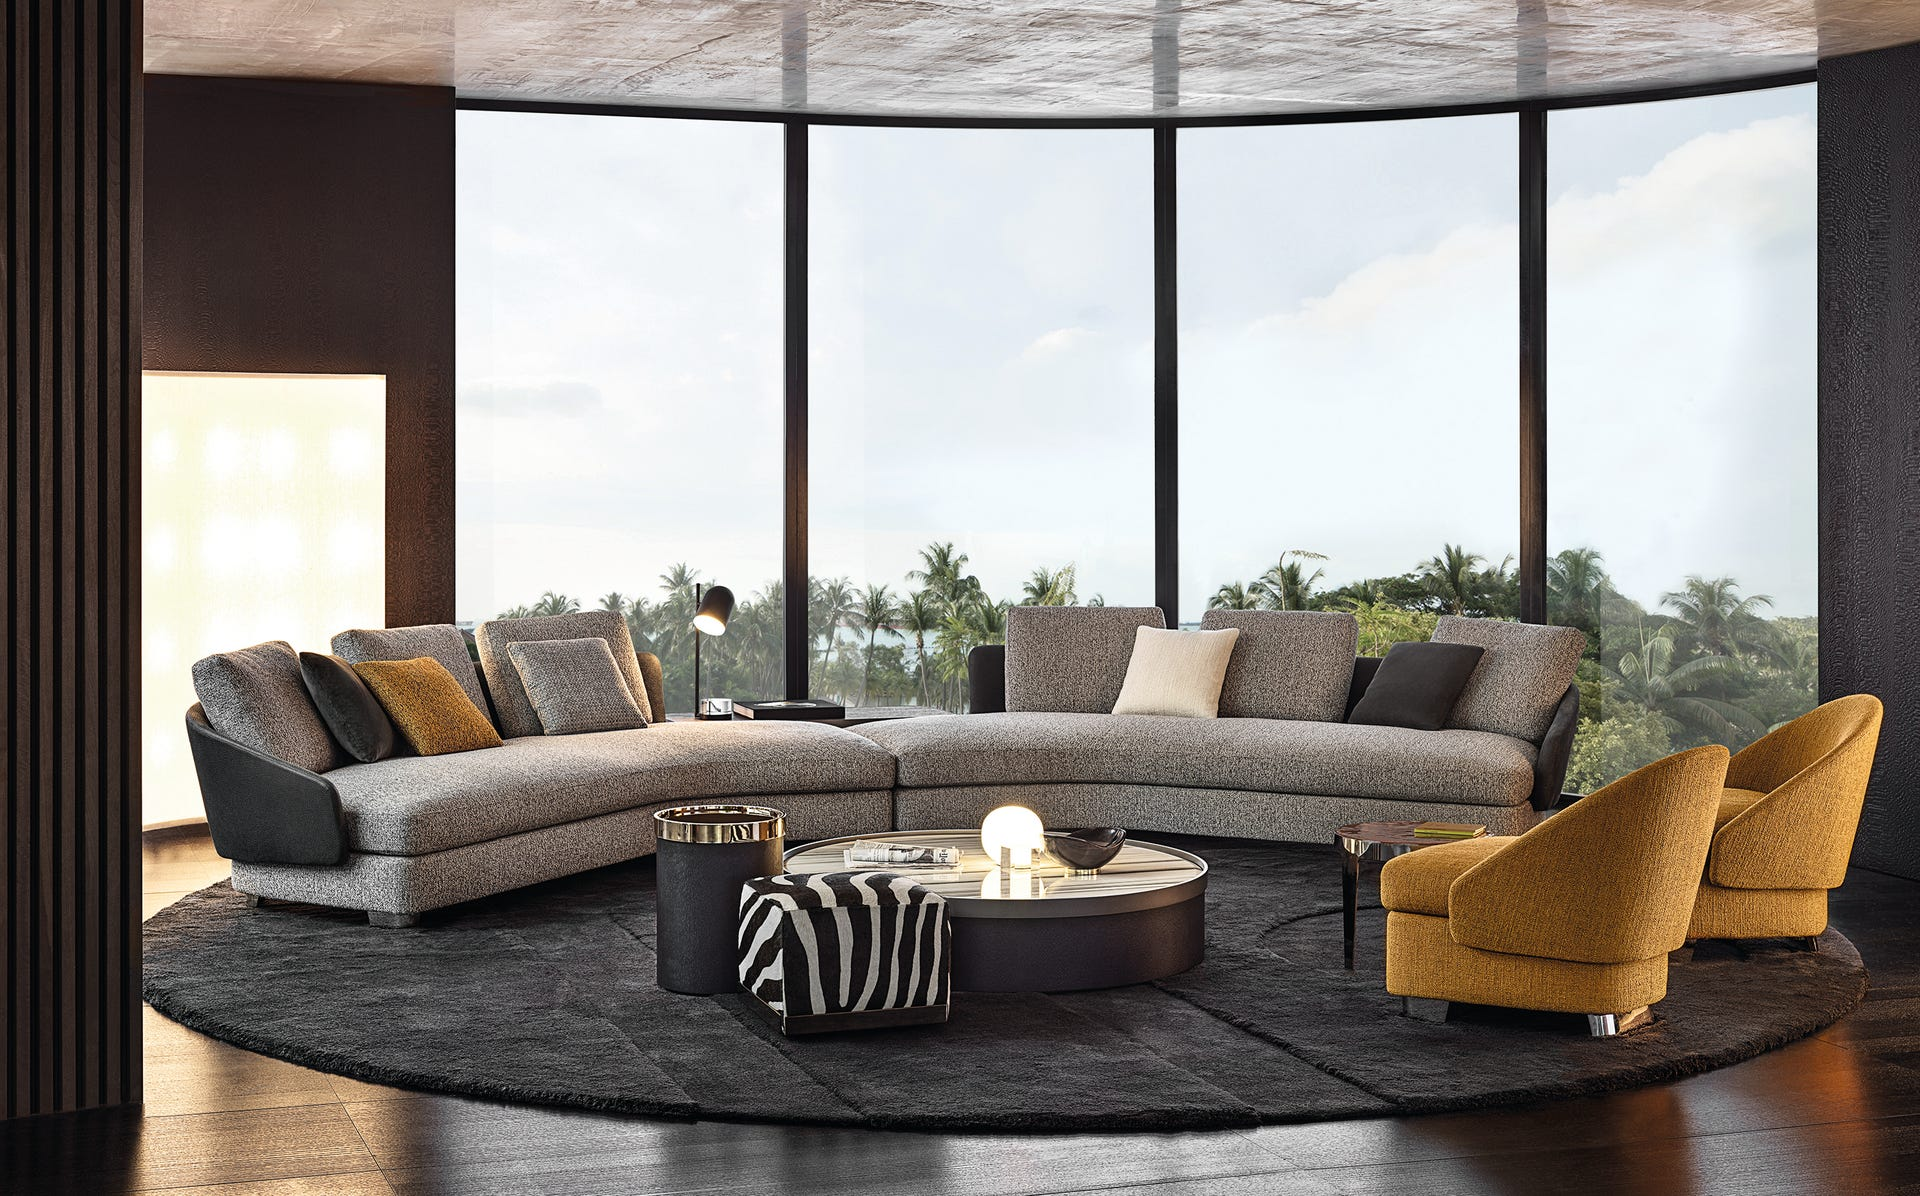 Homestyle New Styles In Chairs And Sofas